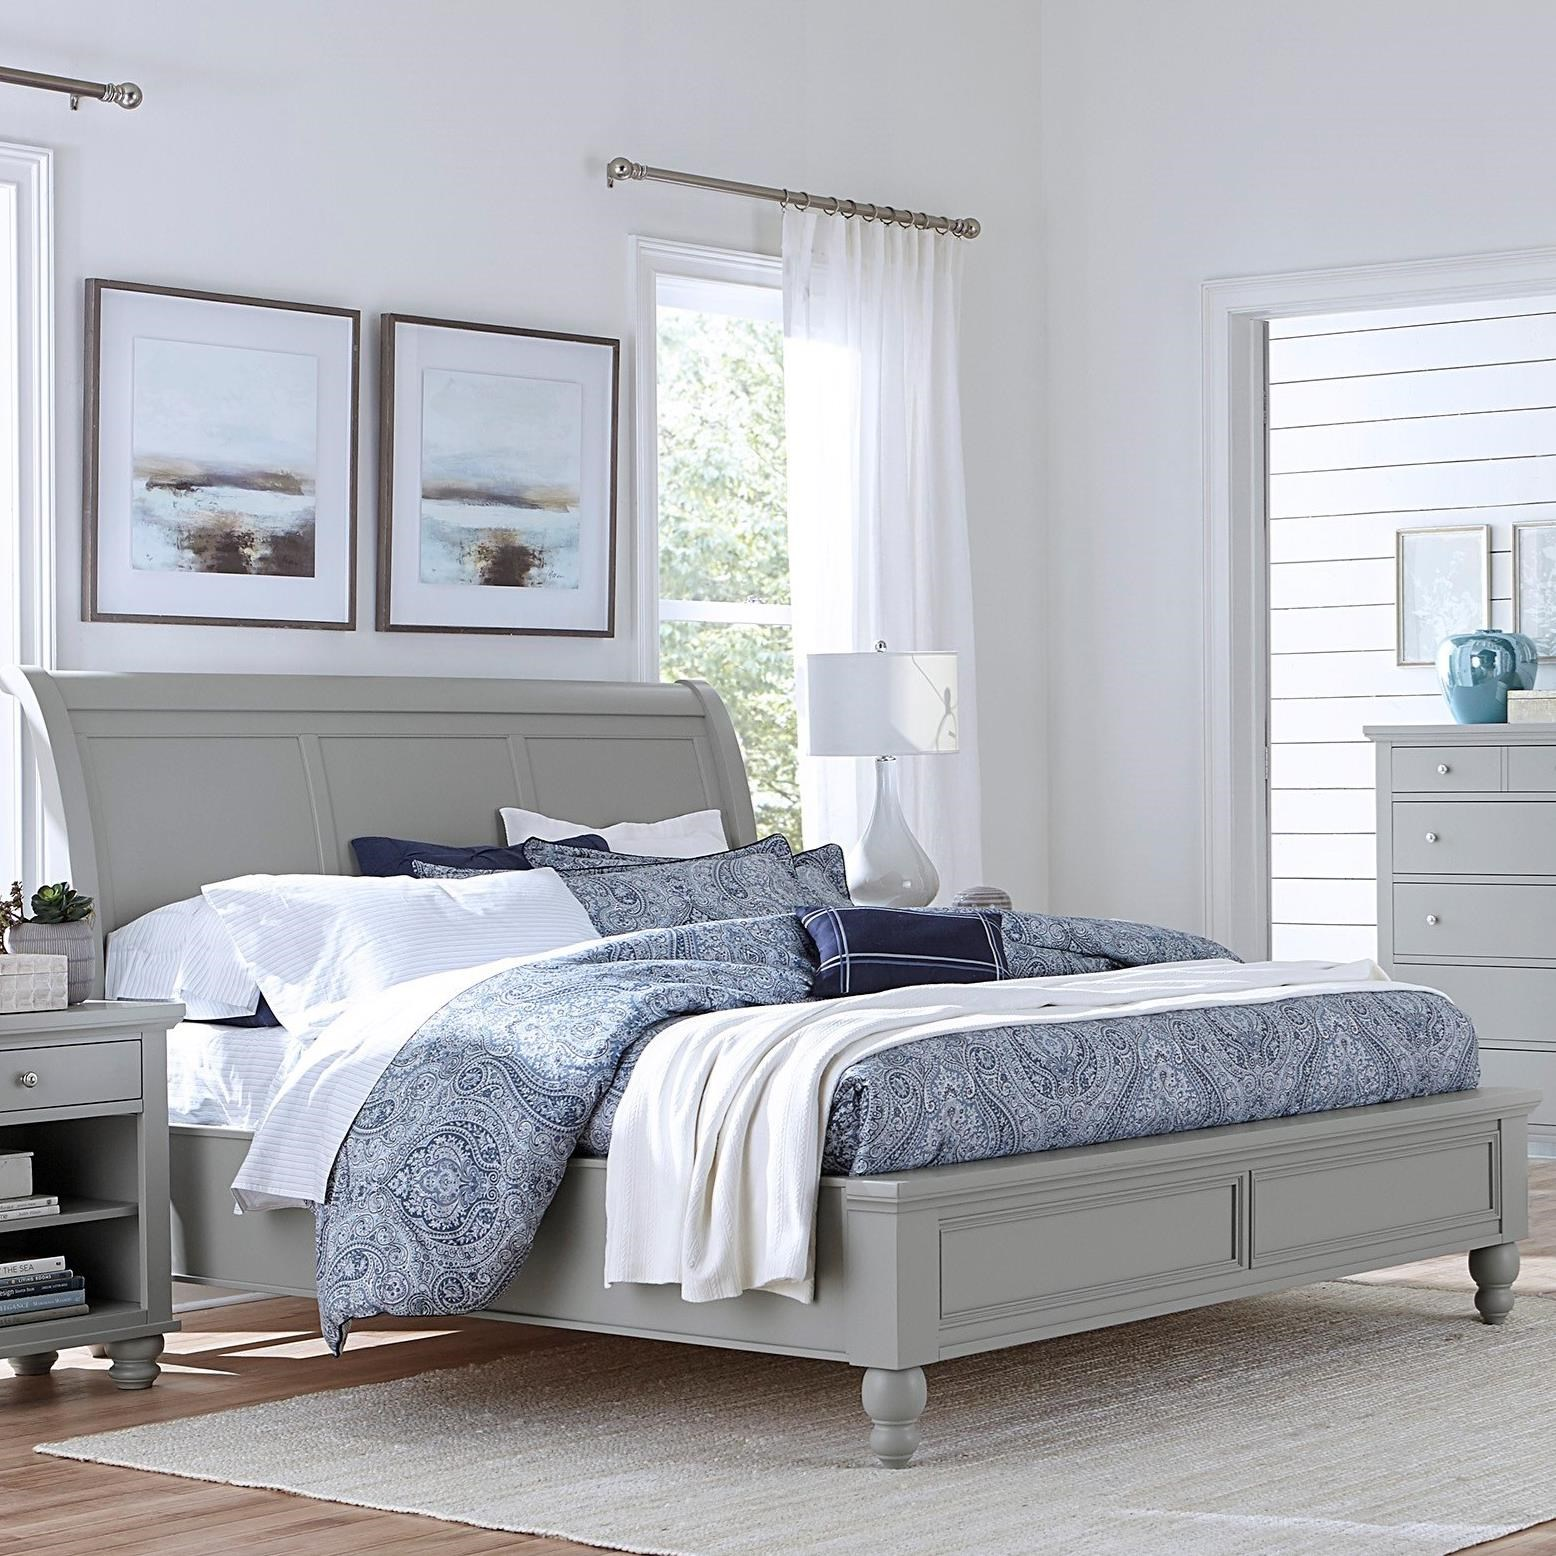 Cambridge King Sleigh Bed by Aspenhome at Baer's Furniture